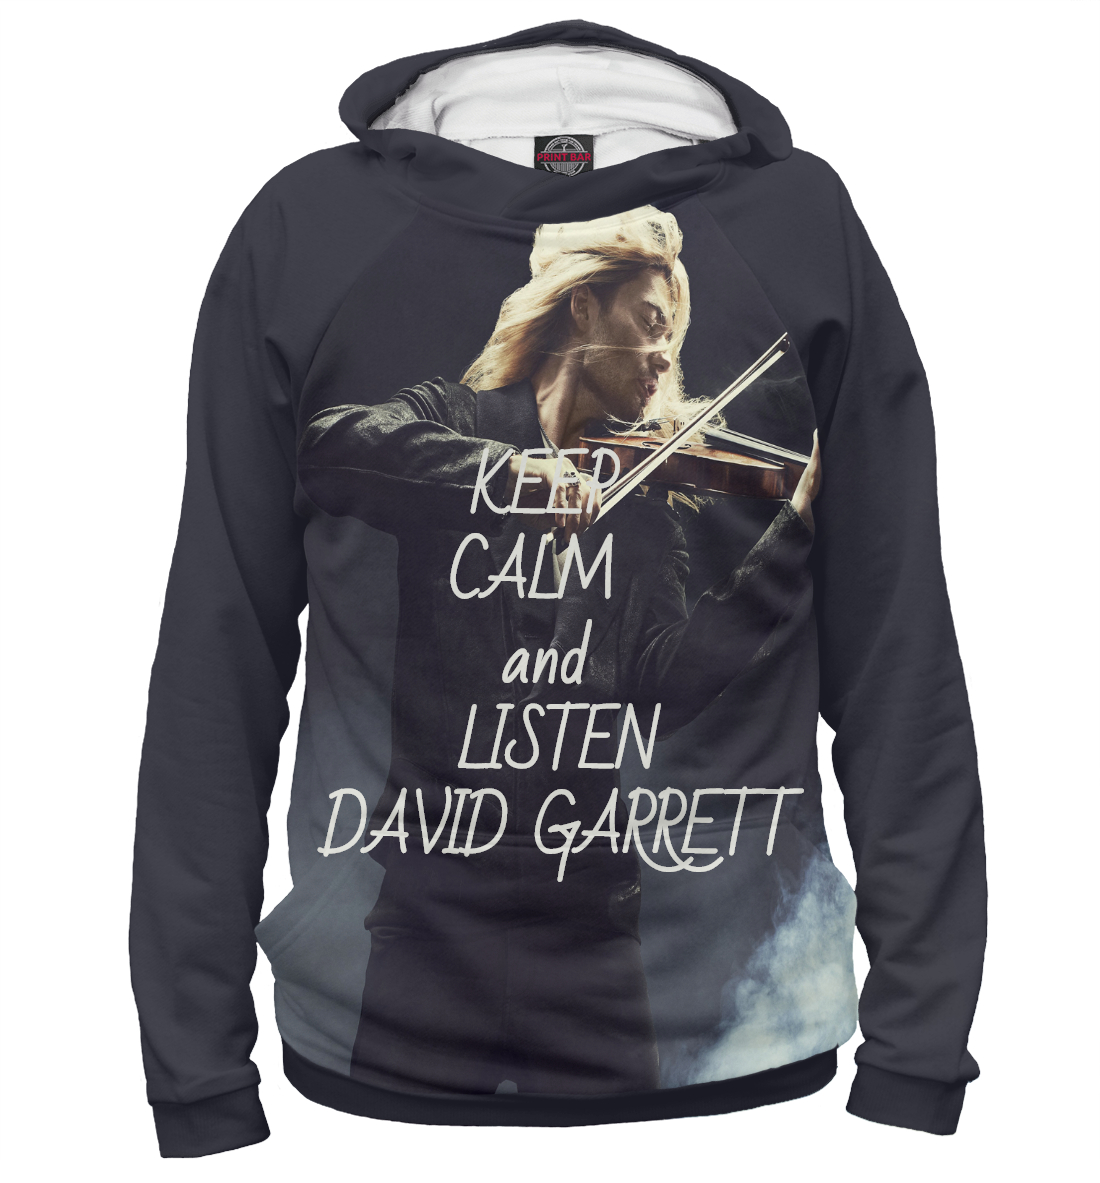 Купить Keep calm and listen David Garrett, Printbar, Худи, MZK-183982-hud-1